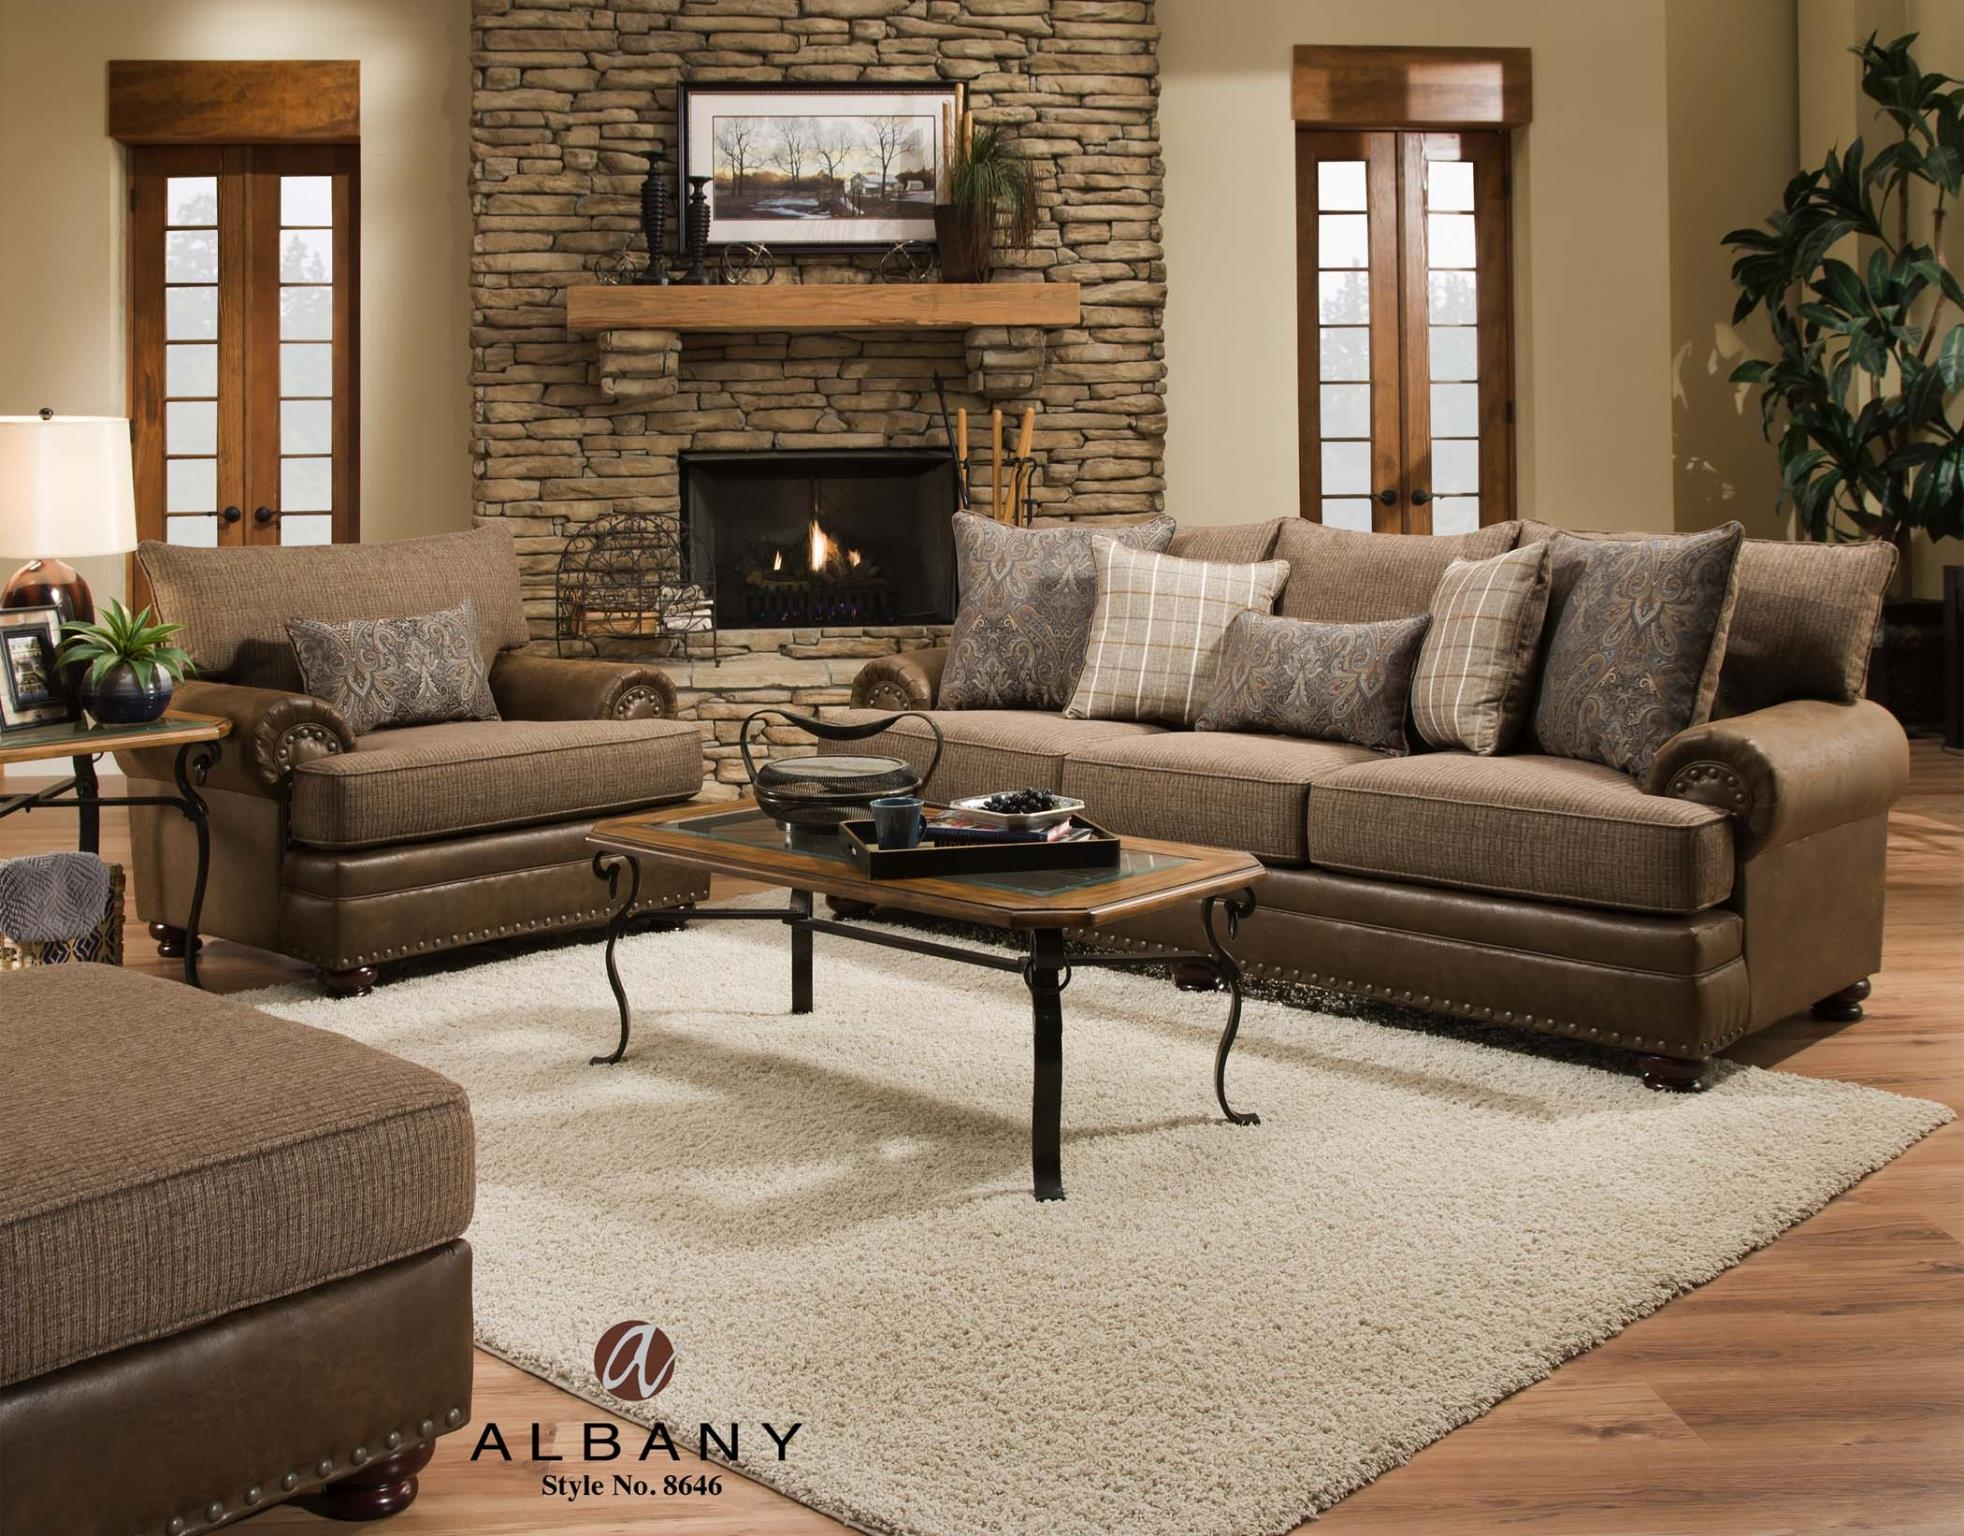 Albany Industries Sofa Fjellkjeden With Albany Industries Sectional Sofa (#6 of 12)